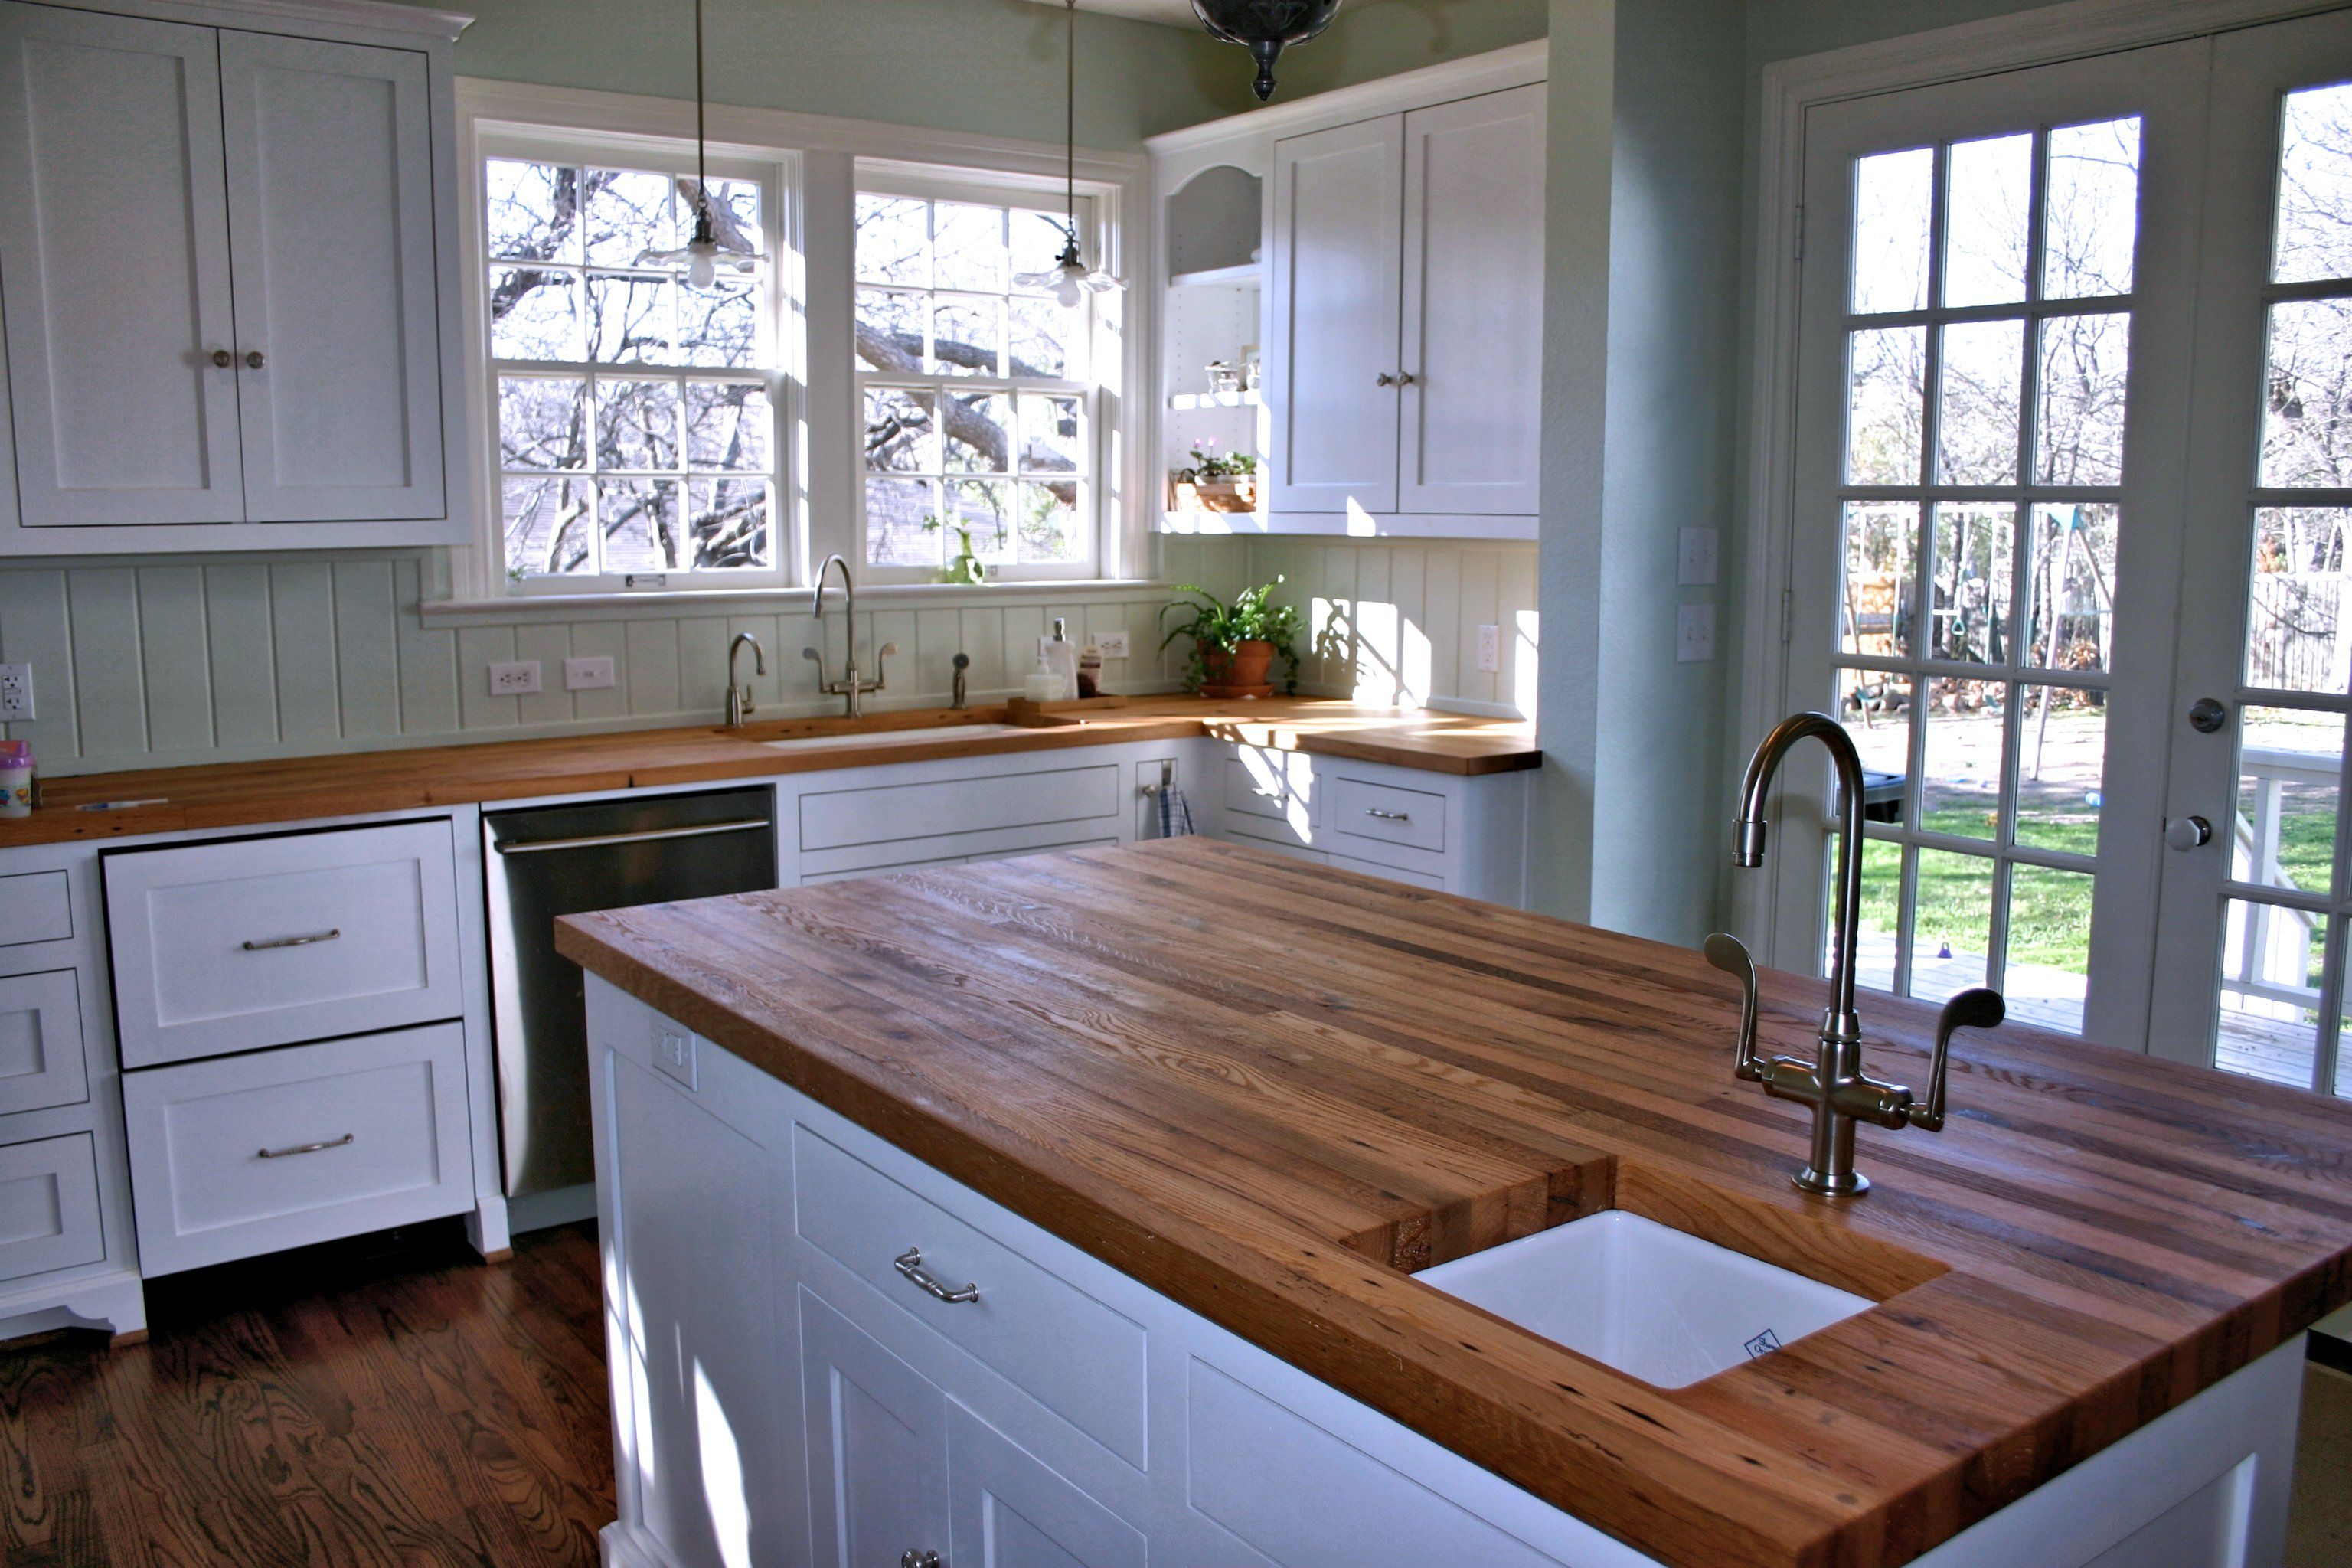 What you need to know about Kitchen Wood Countertop • DIY ...